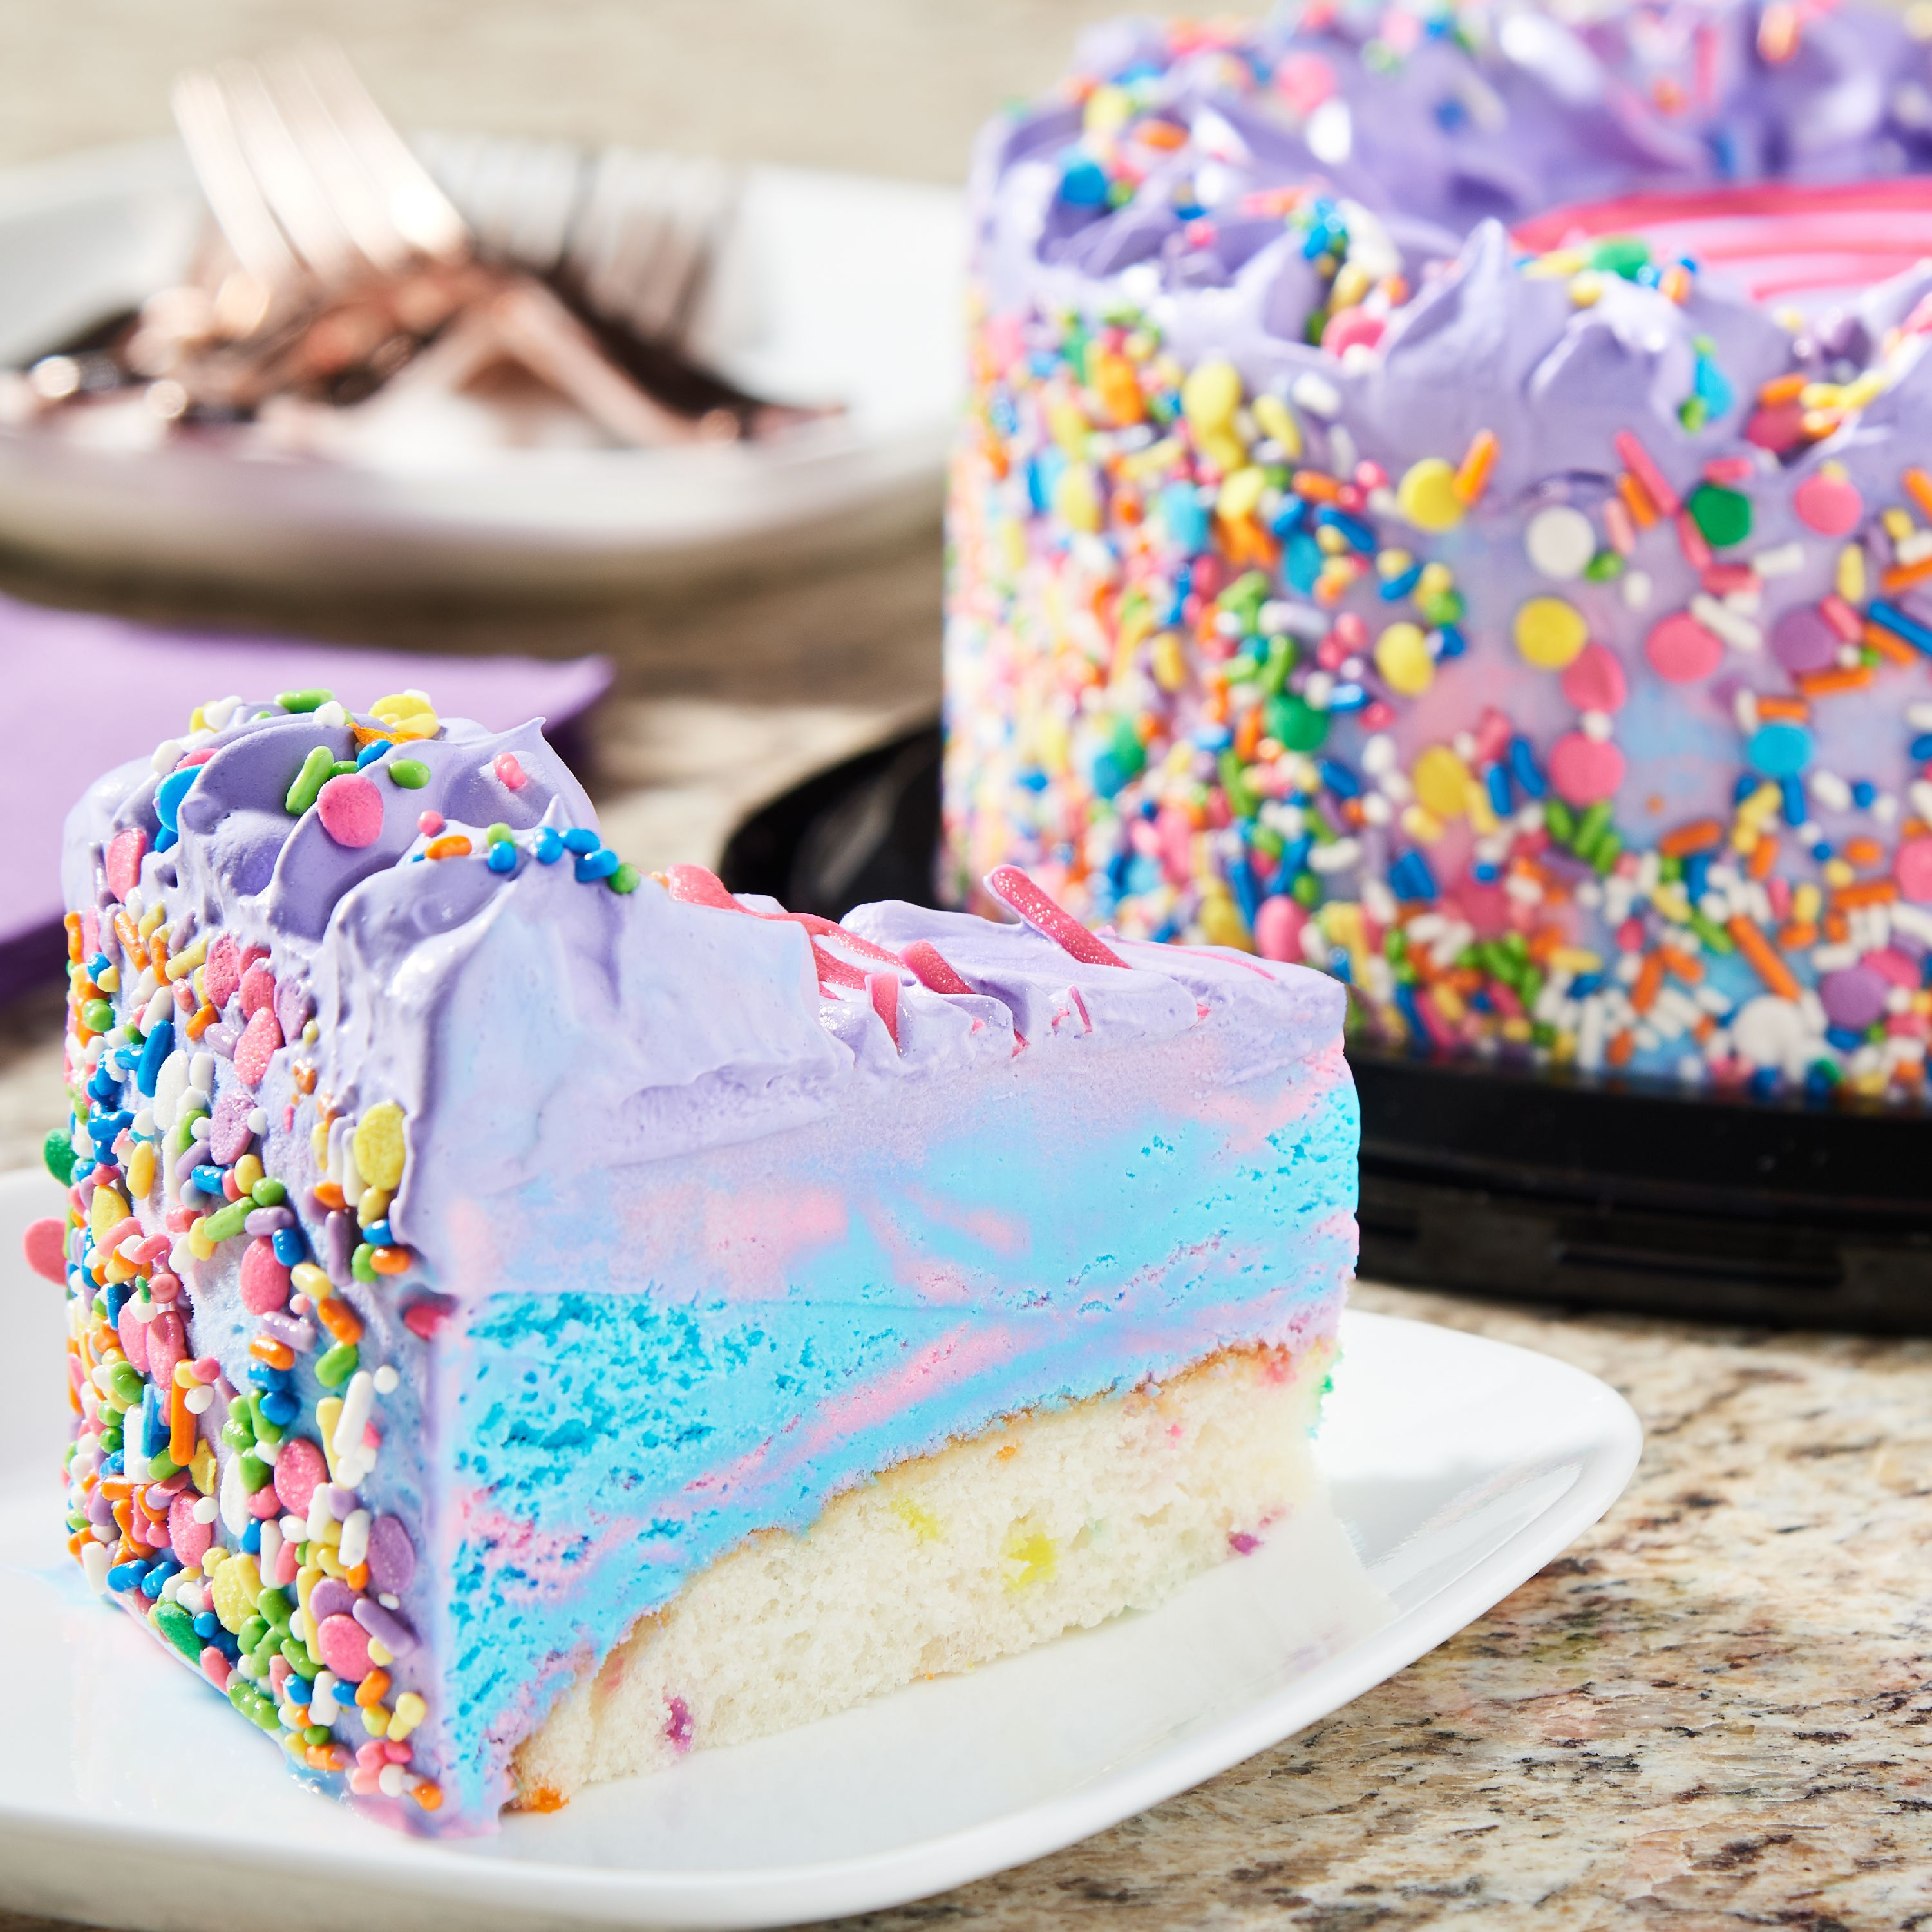 Marvelous Marketside Marketside Unicorn Ice Cream Cake With Confetti Cake Funny Birthday Cards Online Elaedamsfinfo